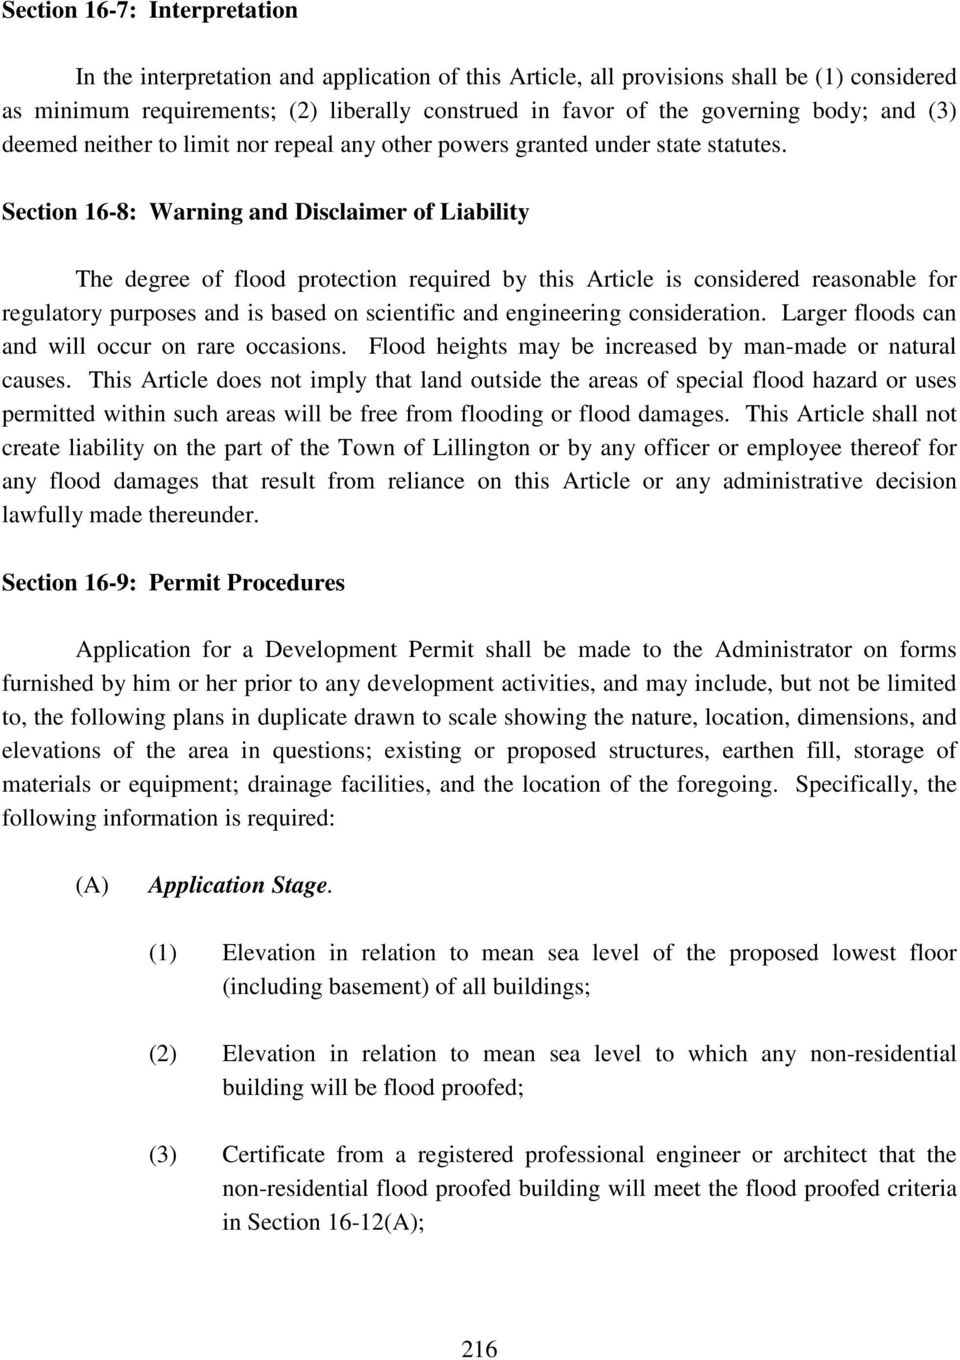 Section 16-8: Warning and Disclaimer of Liability The degree of flood protection required by this Article is considered reasonable for regulatory purposes and is based on scientific and engineering